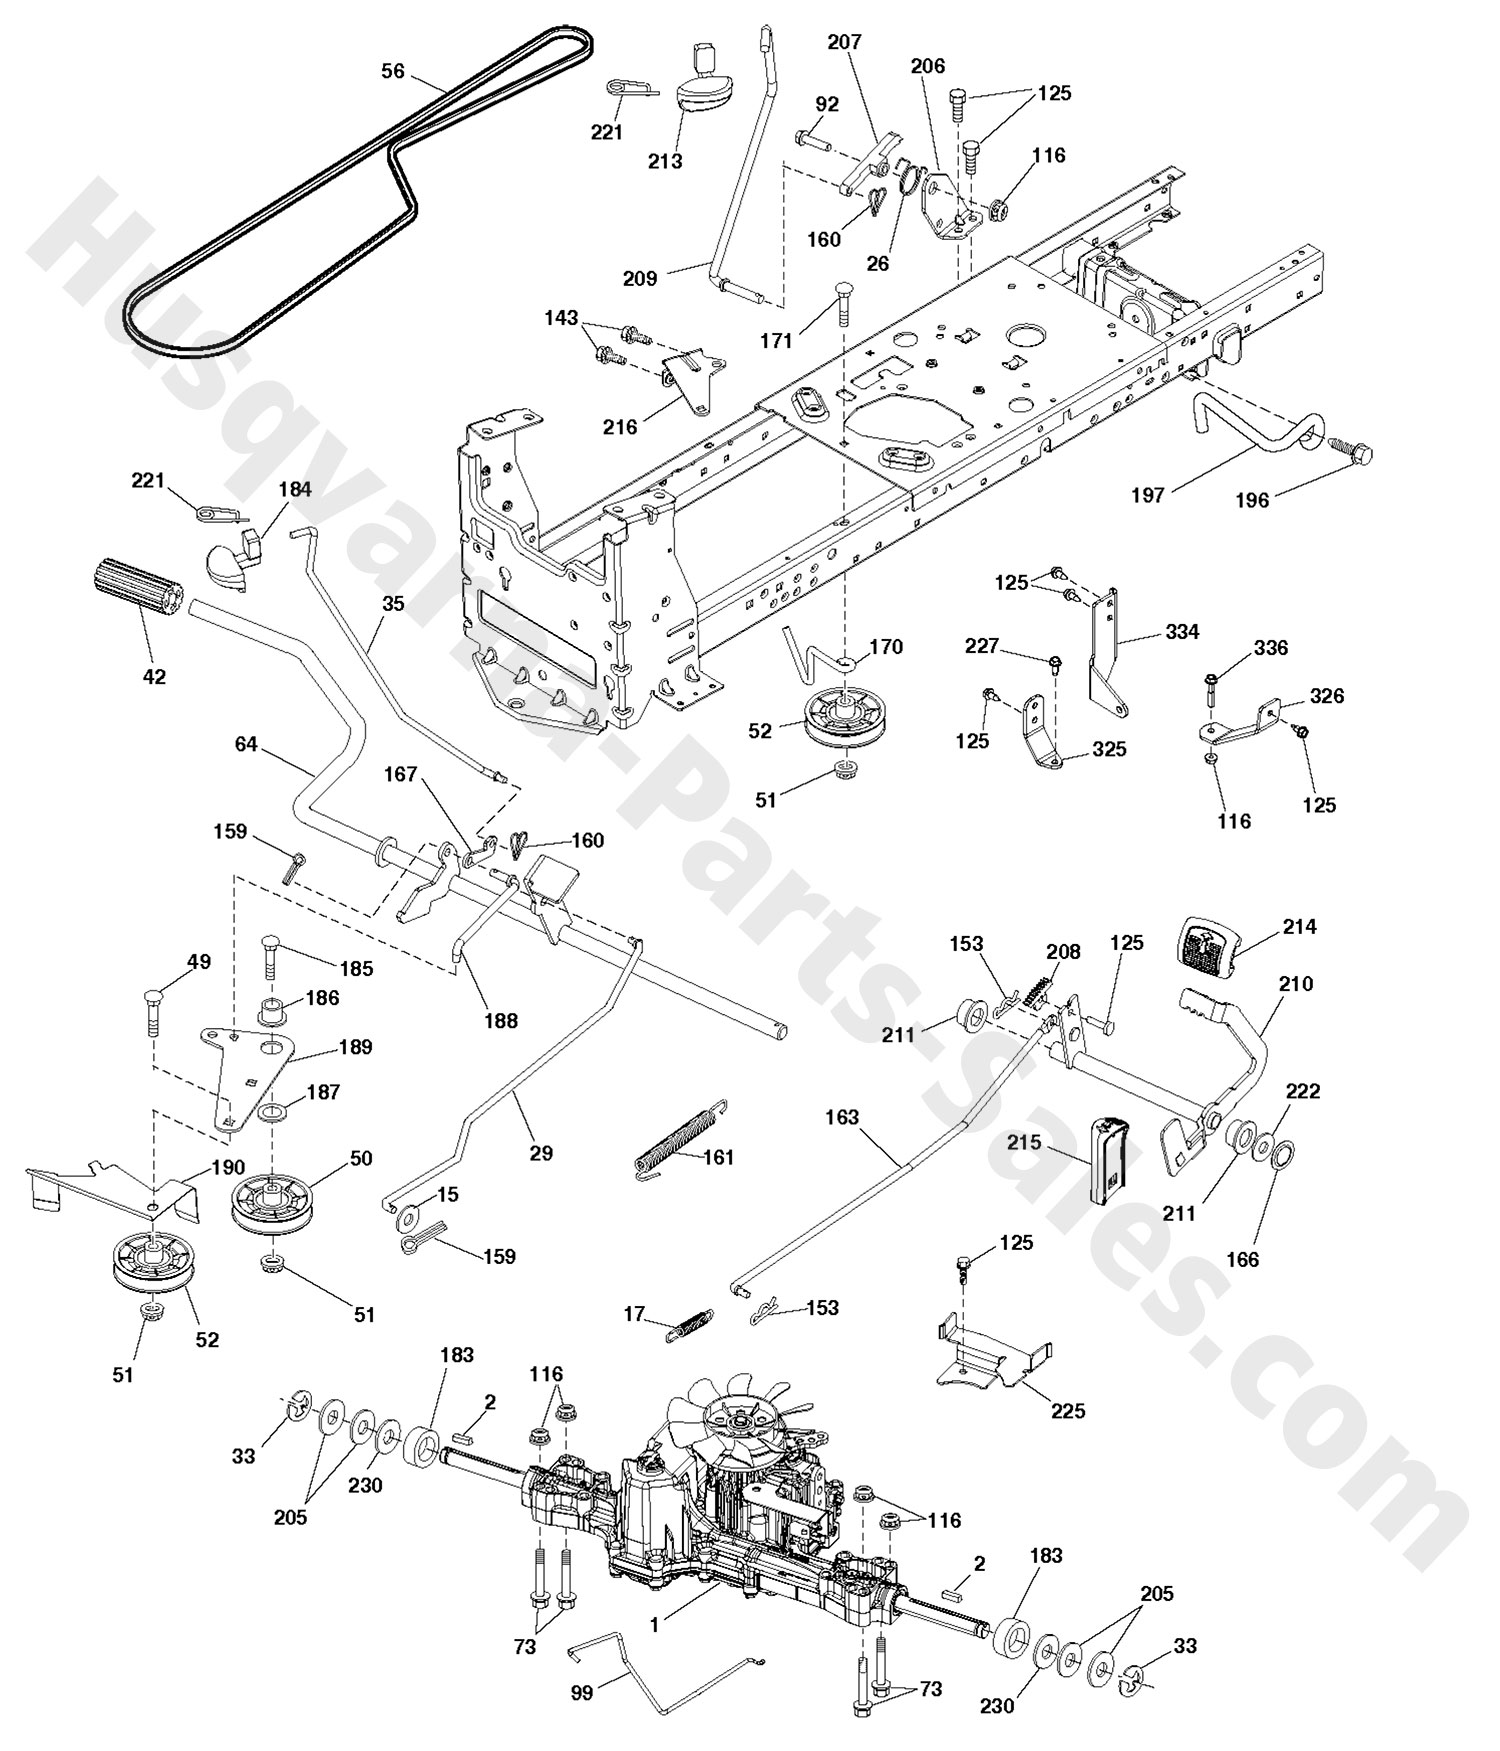 Mtd 46 Inch Mower Deck Parts Diagram Wiring Diagrams in addition Transmission Drive Belt Kevlar Fits Husqvarna Lth130 Replaces Oem 531006044 532140910 286 P also Engine Accessories as well Wiring Harness For A Huskee Lt4200 additionally Lawn Tractor Deck Belt 373721. on husky mower parts